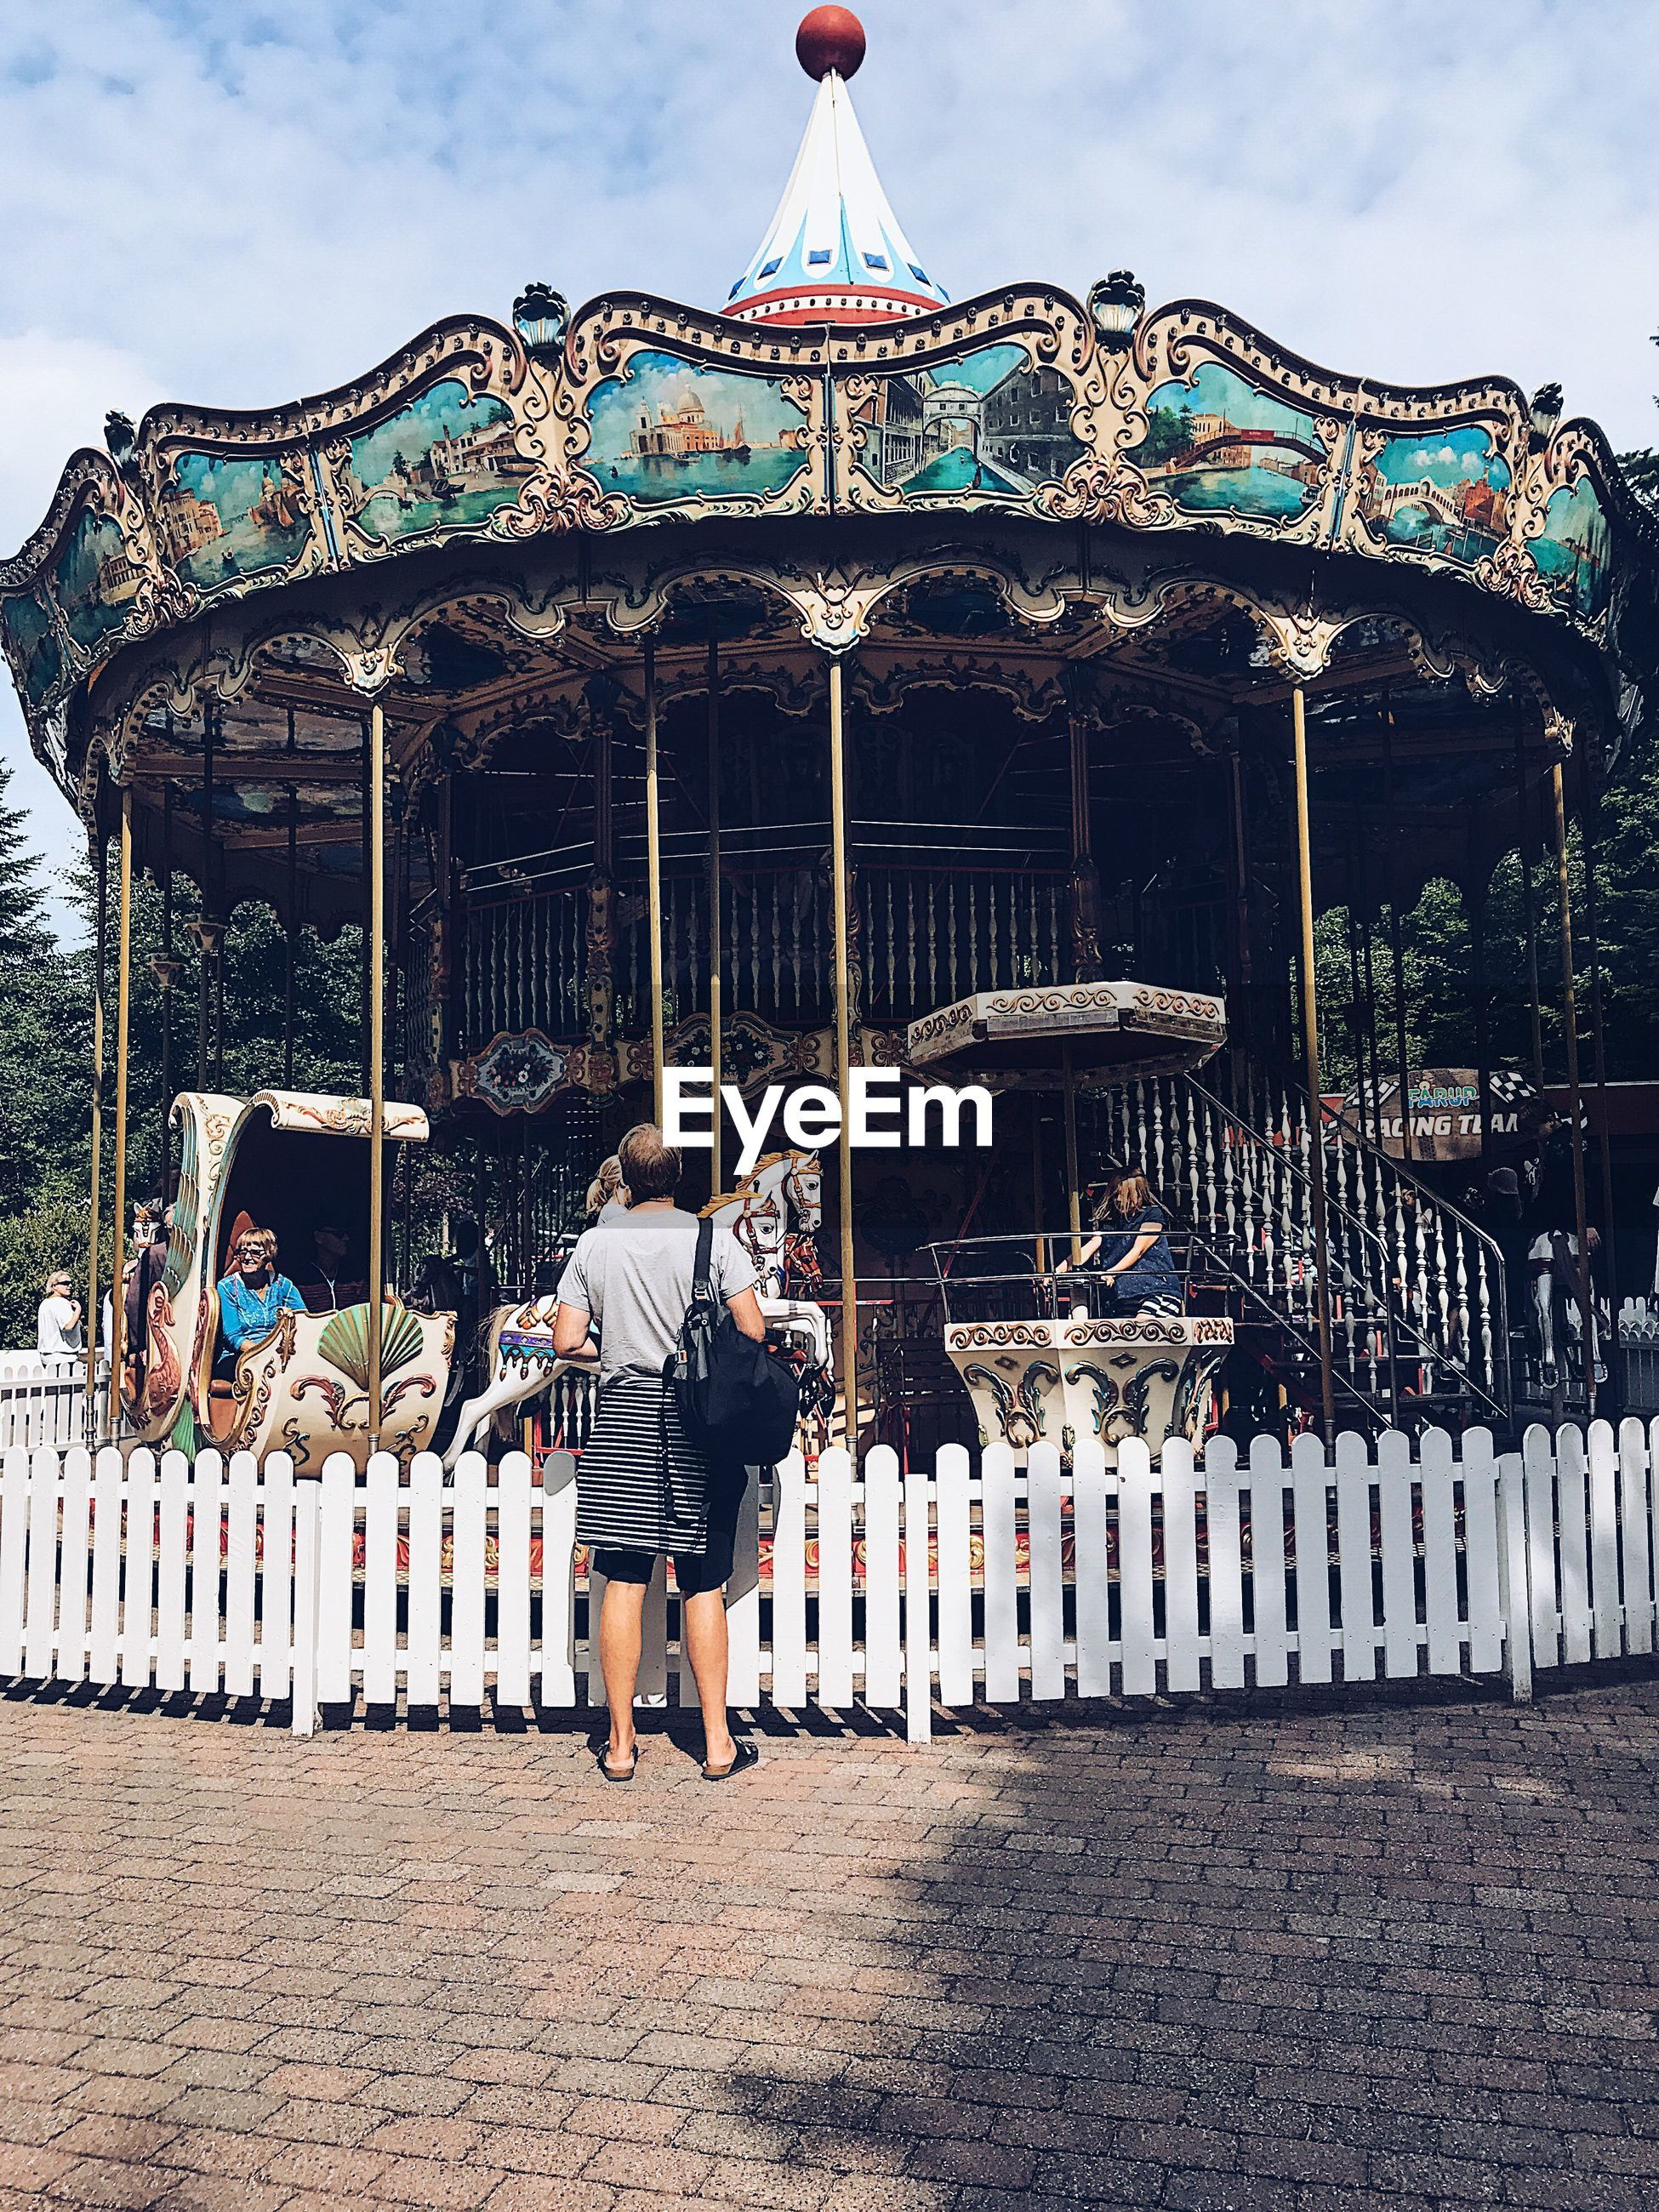 real people, leisure activity, amusement park, lifestyles, arts culture and entertainment, casual clothing, day, outdoors, rear view, built structure, full length, amusement park ride, standing, one person, sky, young women, men, carousel, young adult, architecture, people